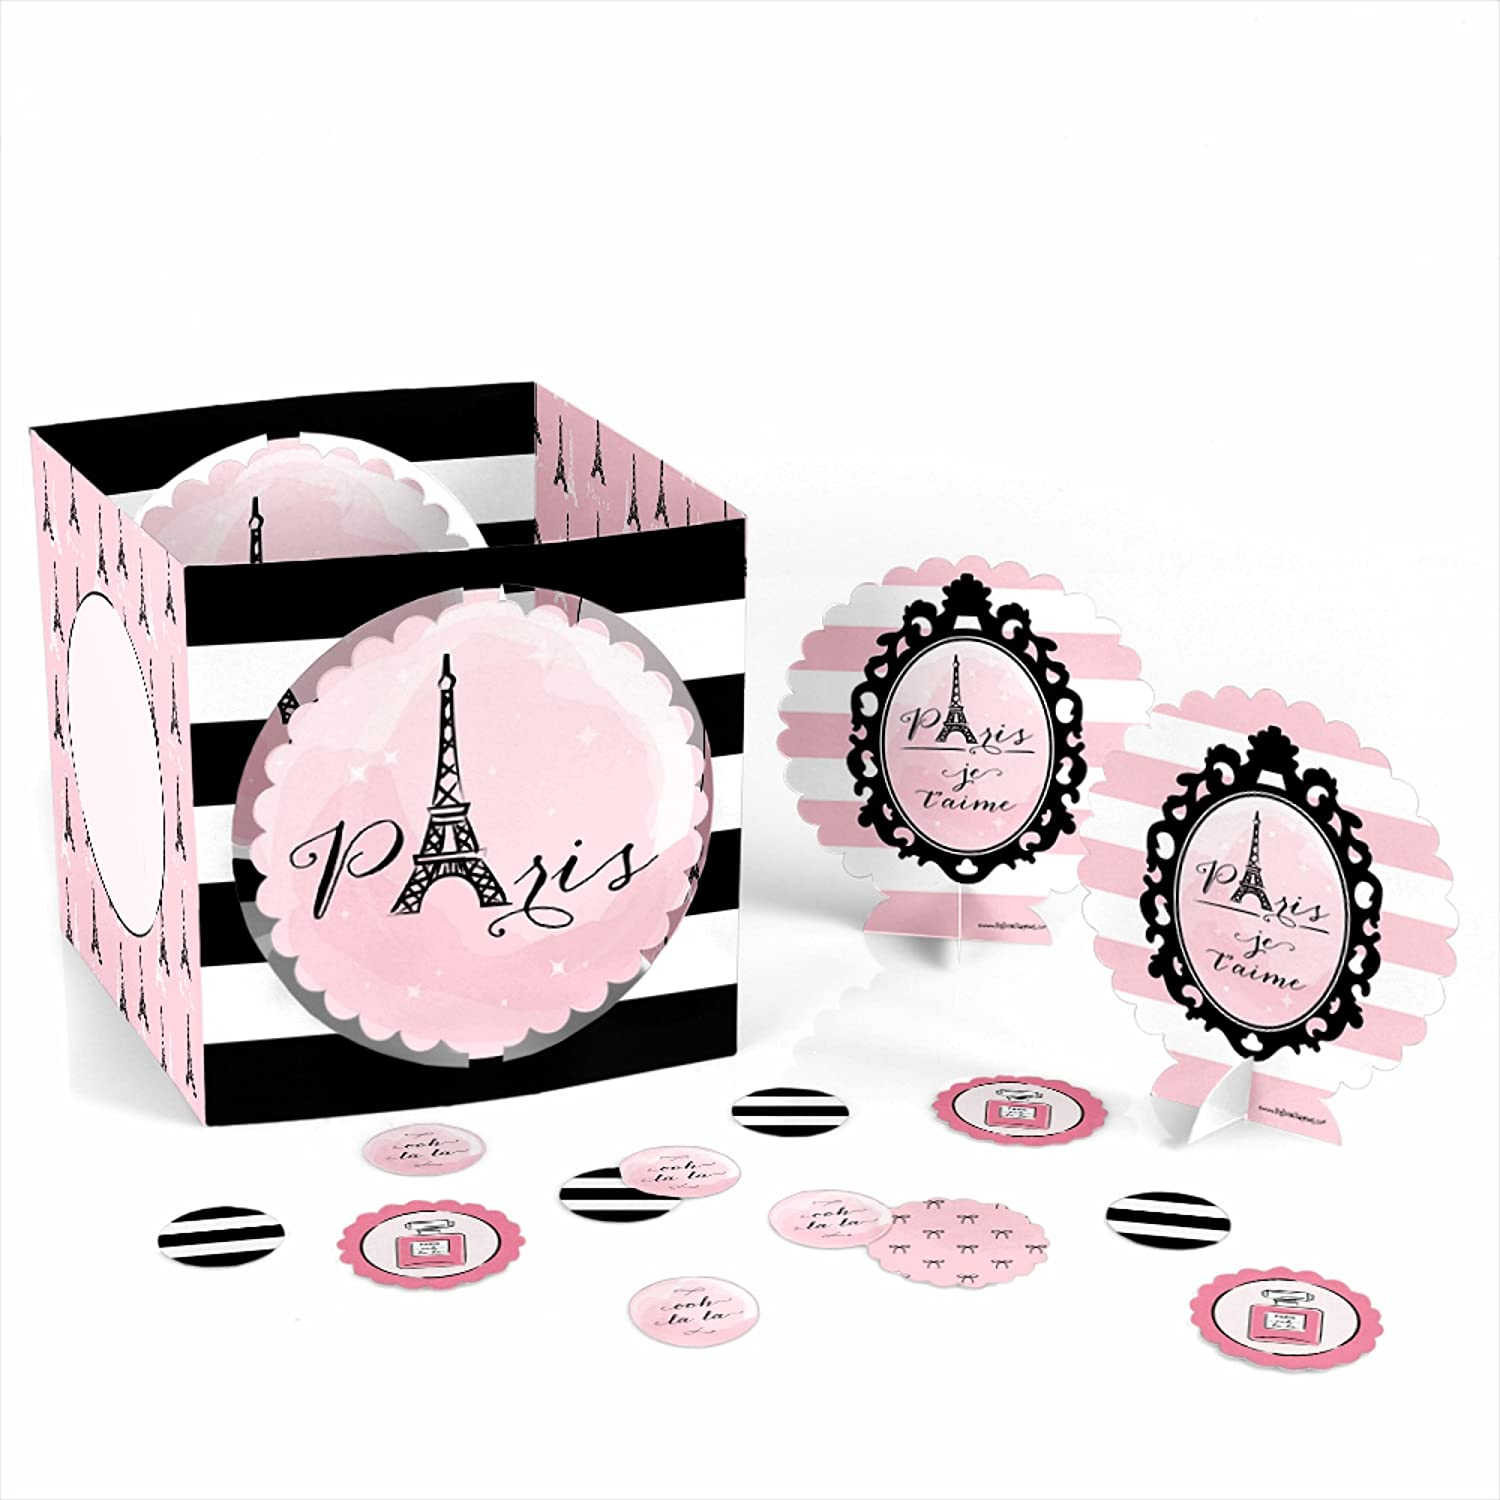 Amazon Paris Ooh La La Paris Themed Baby Shower or